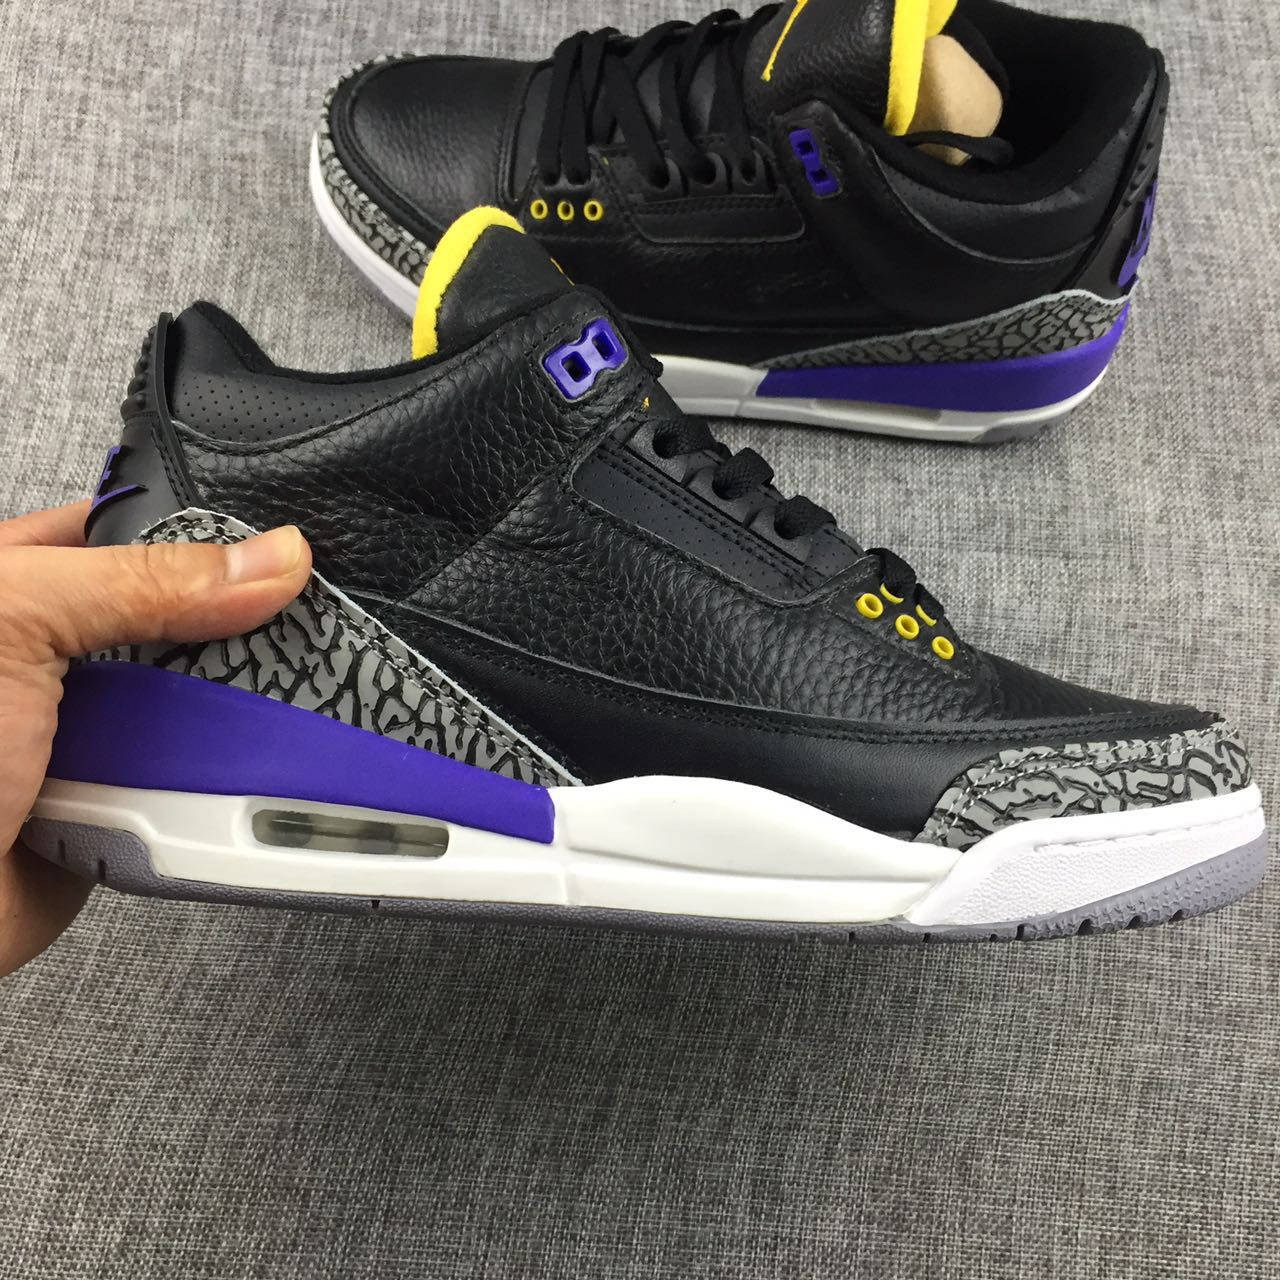 New Air Jordan 3 Black Purple Yellow Shoes